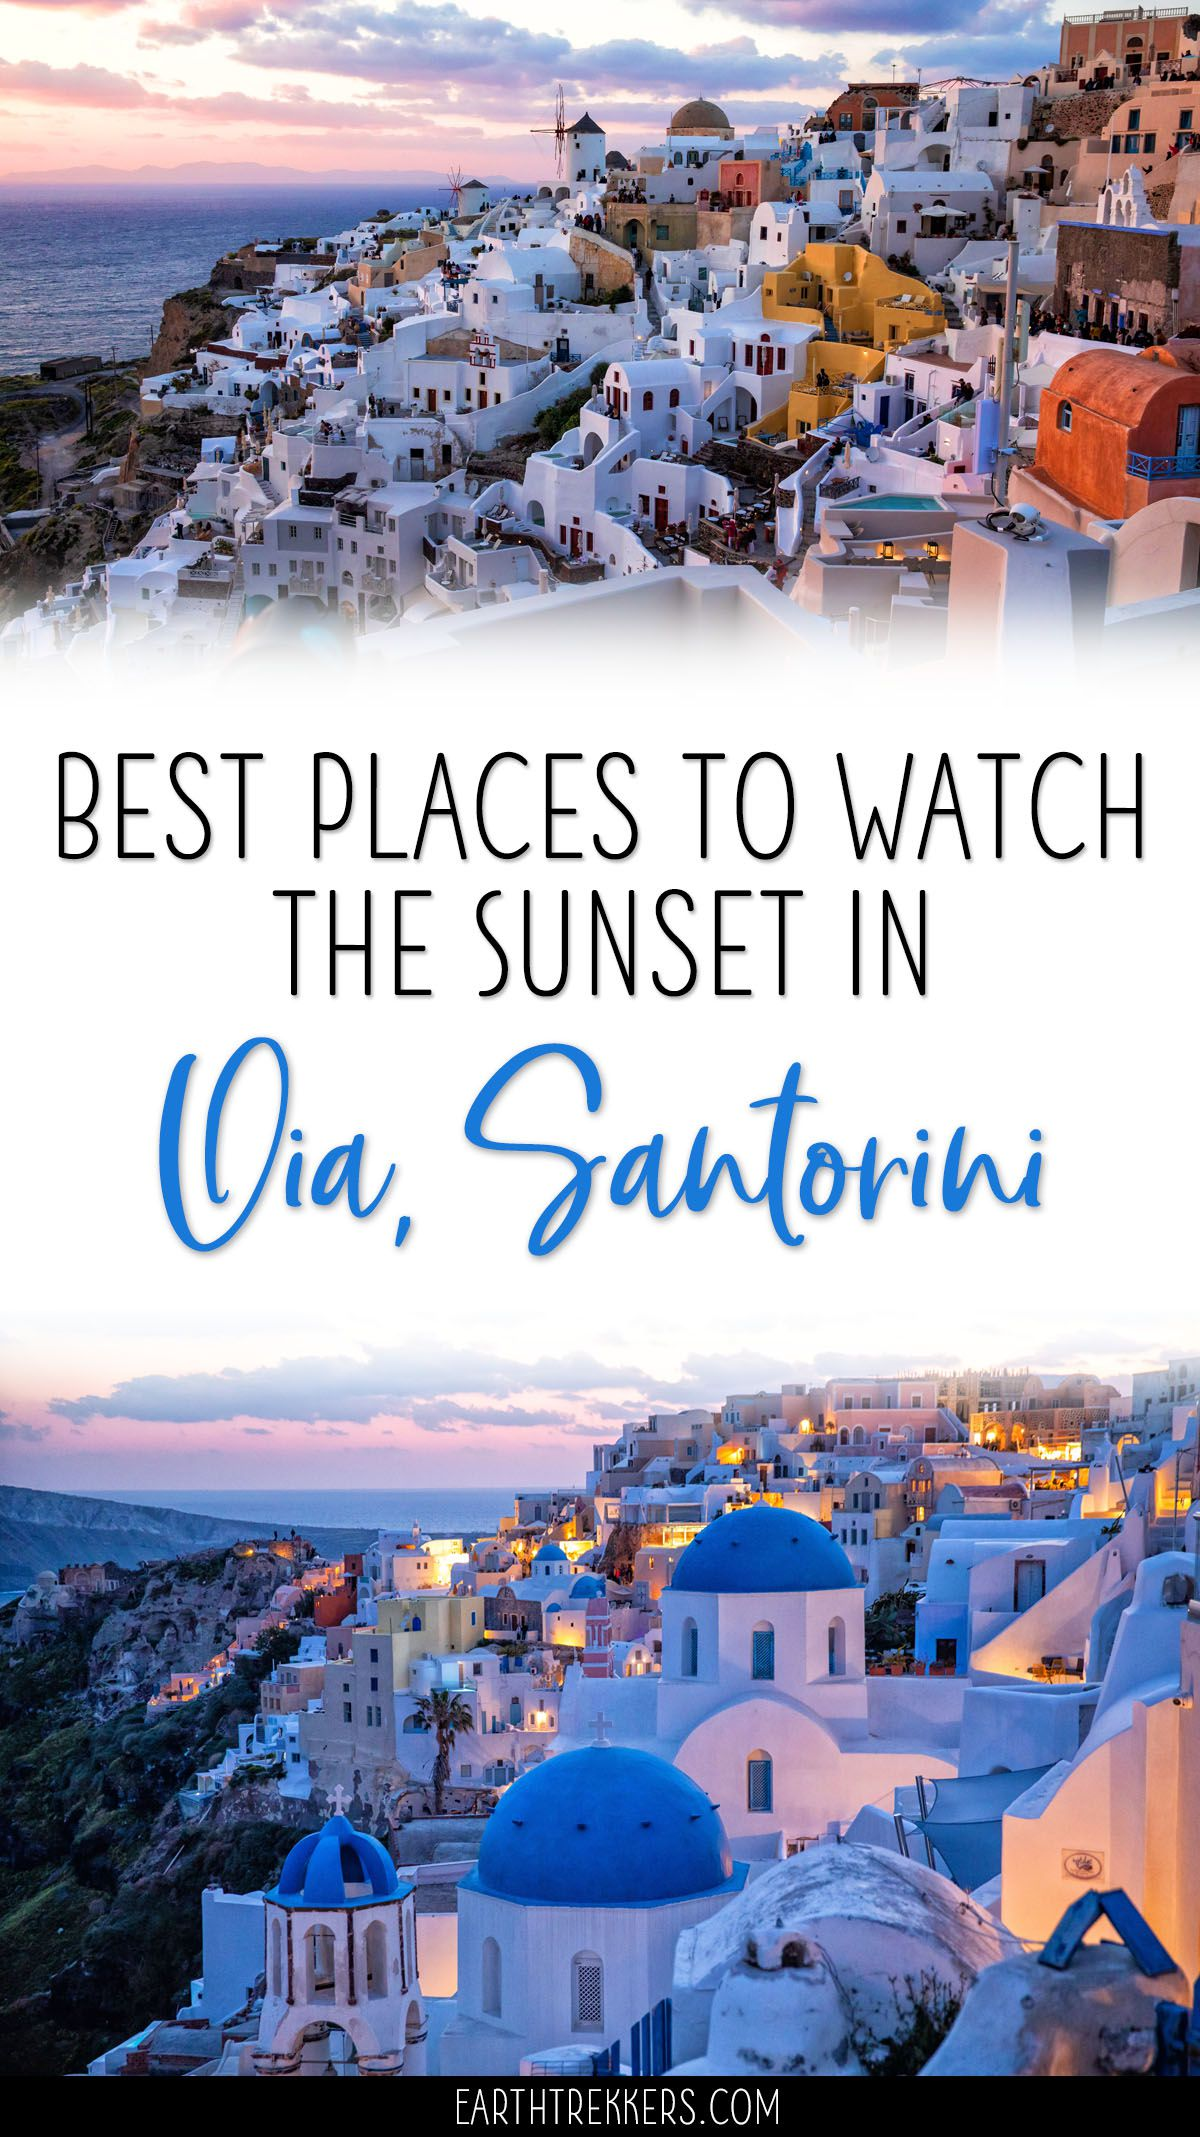 Best Sunset Spots Oia Santorini